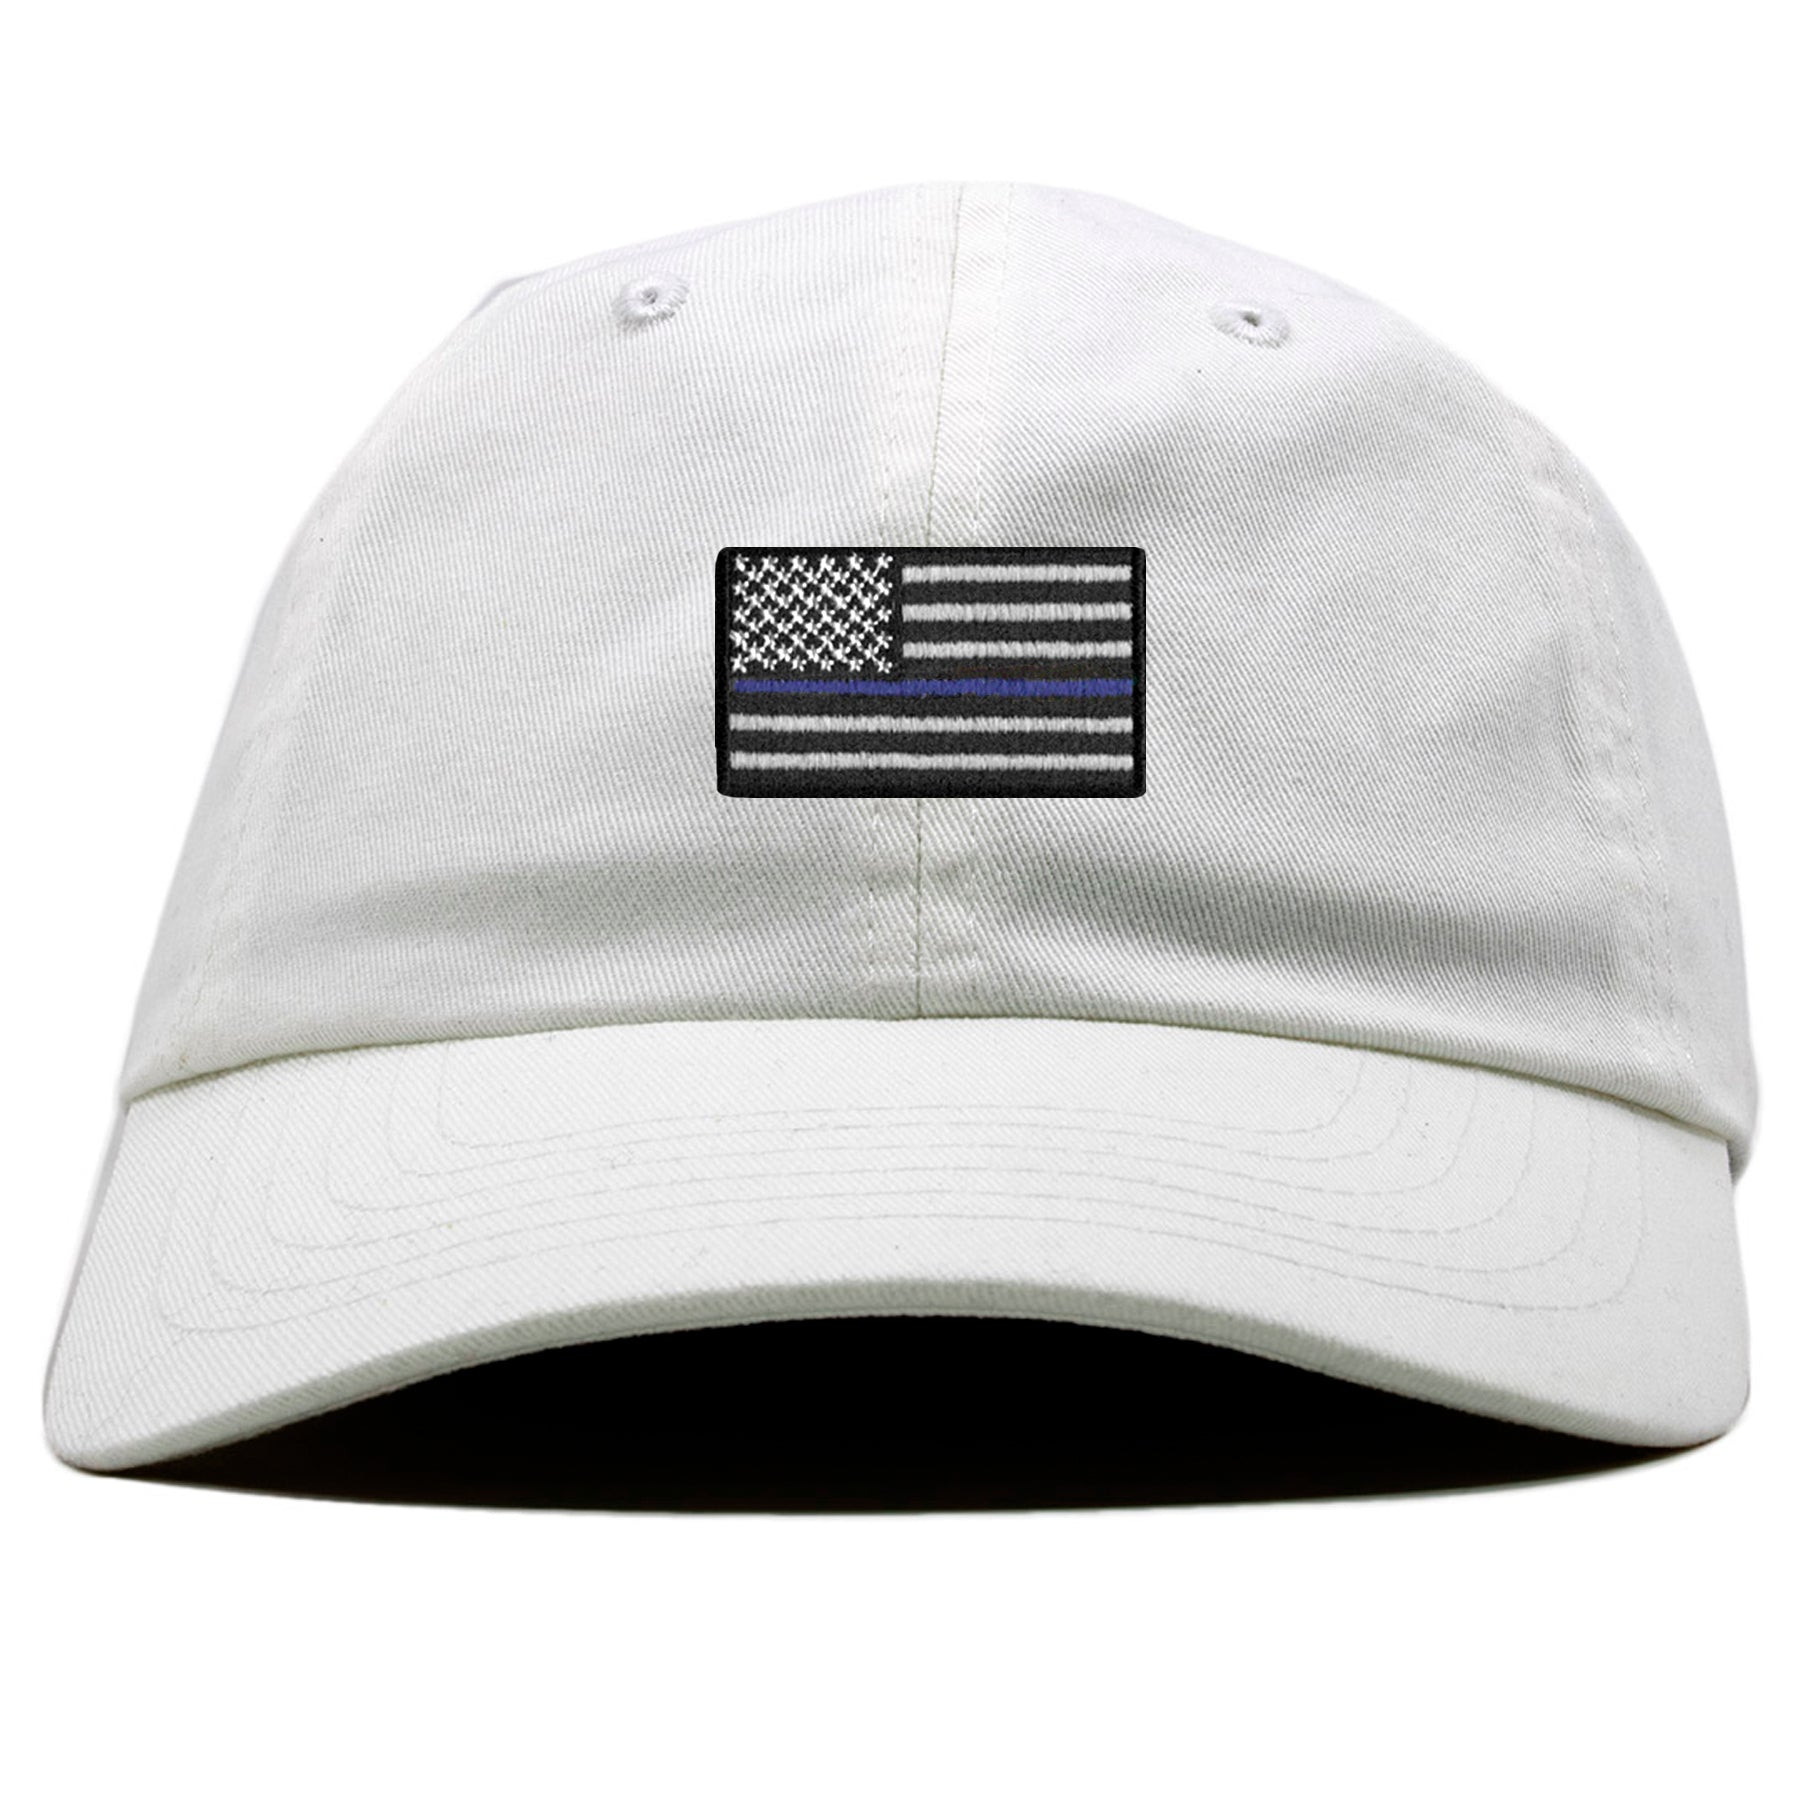 7ef45689dec1 The front of the white Police Lives Matters Blue Lives Matters baseball cap  has a white